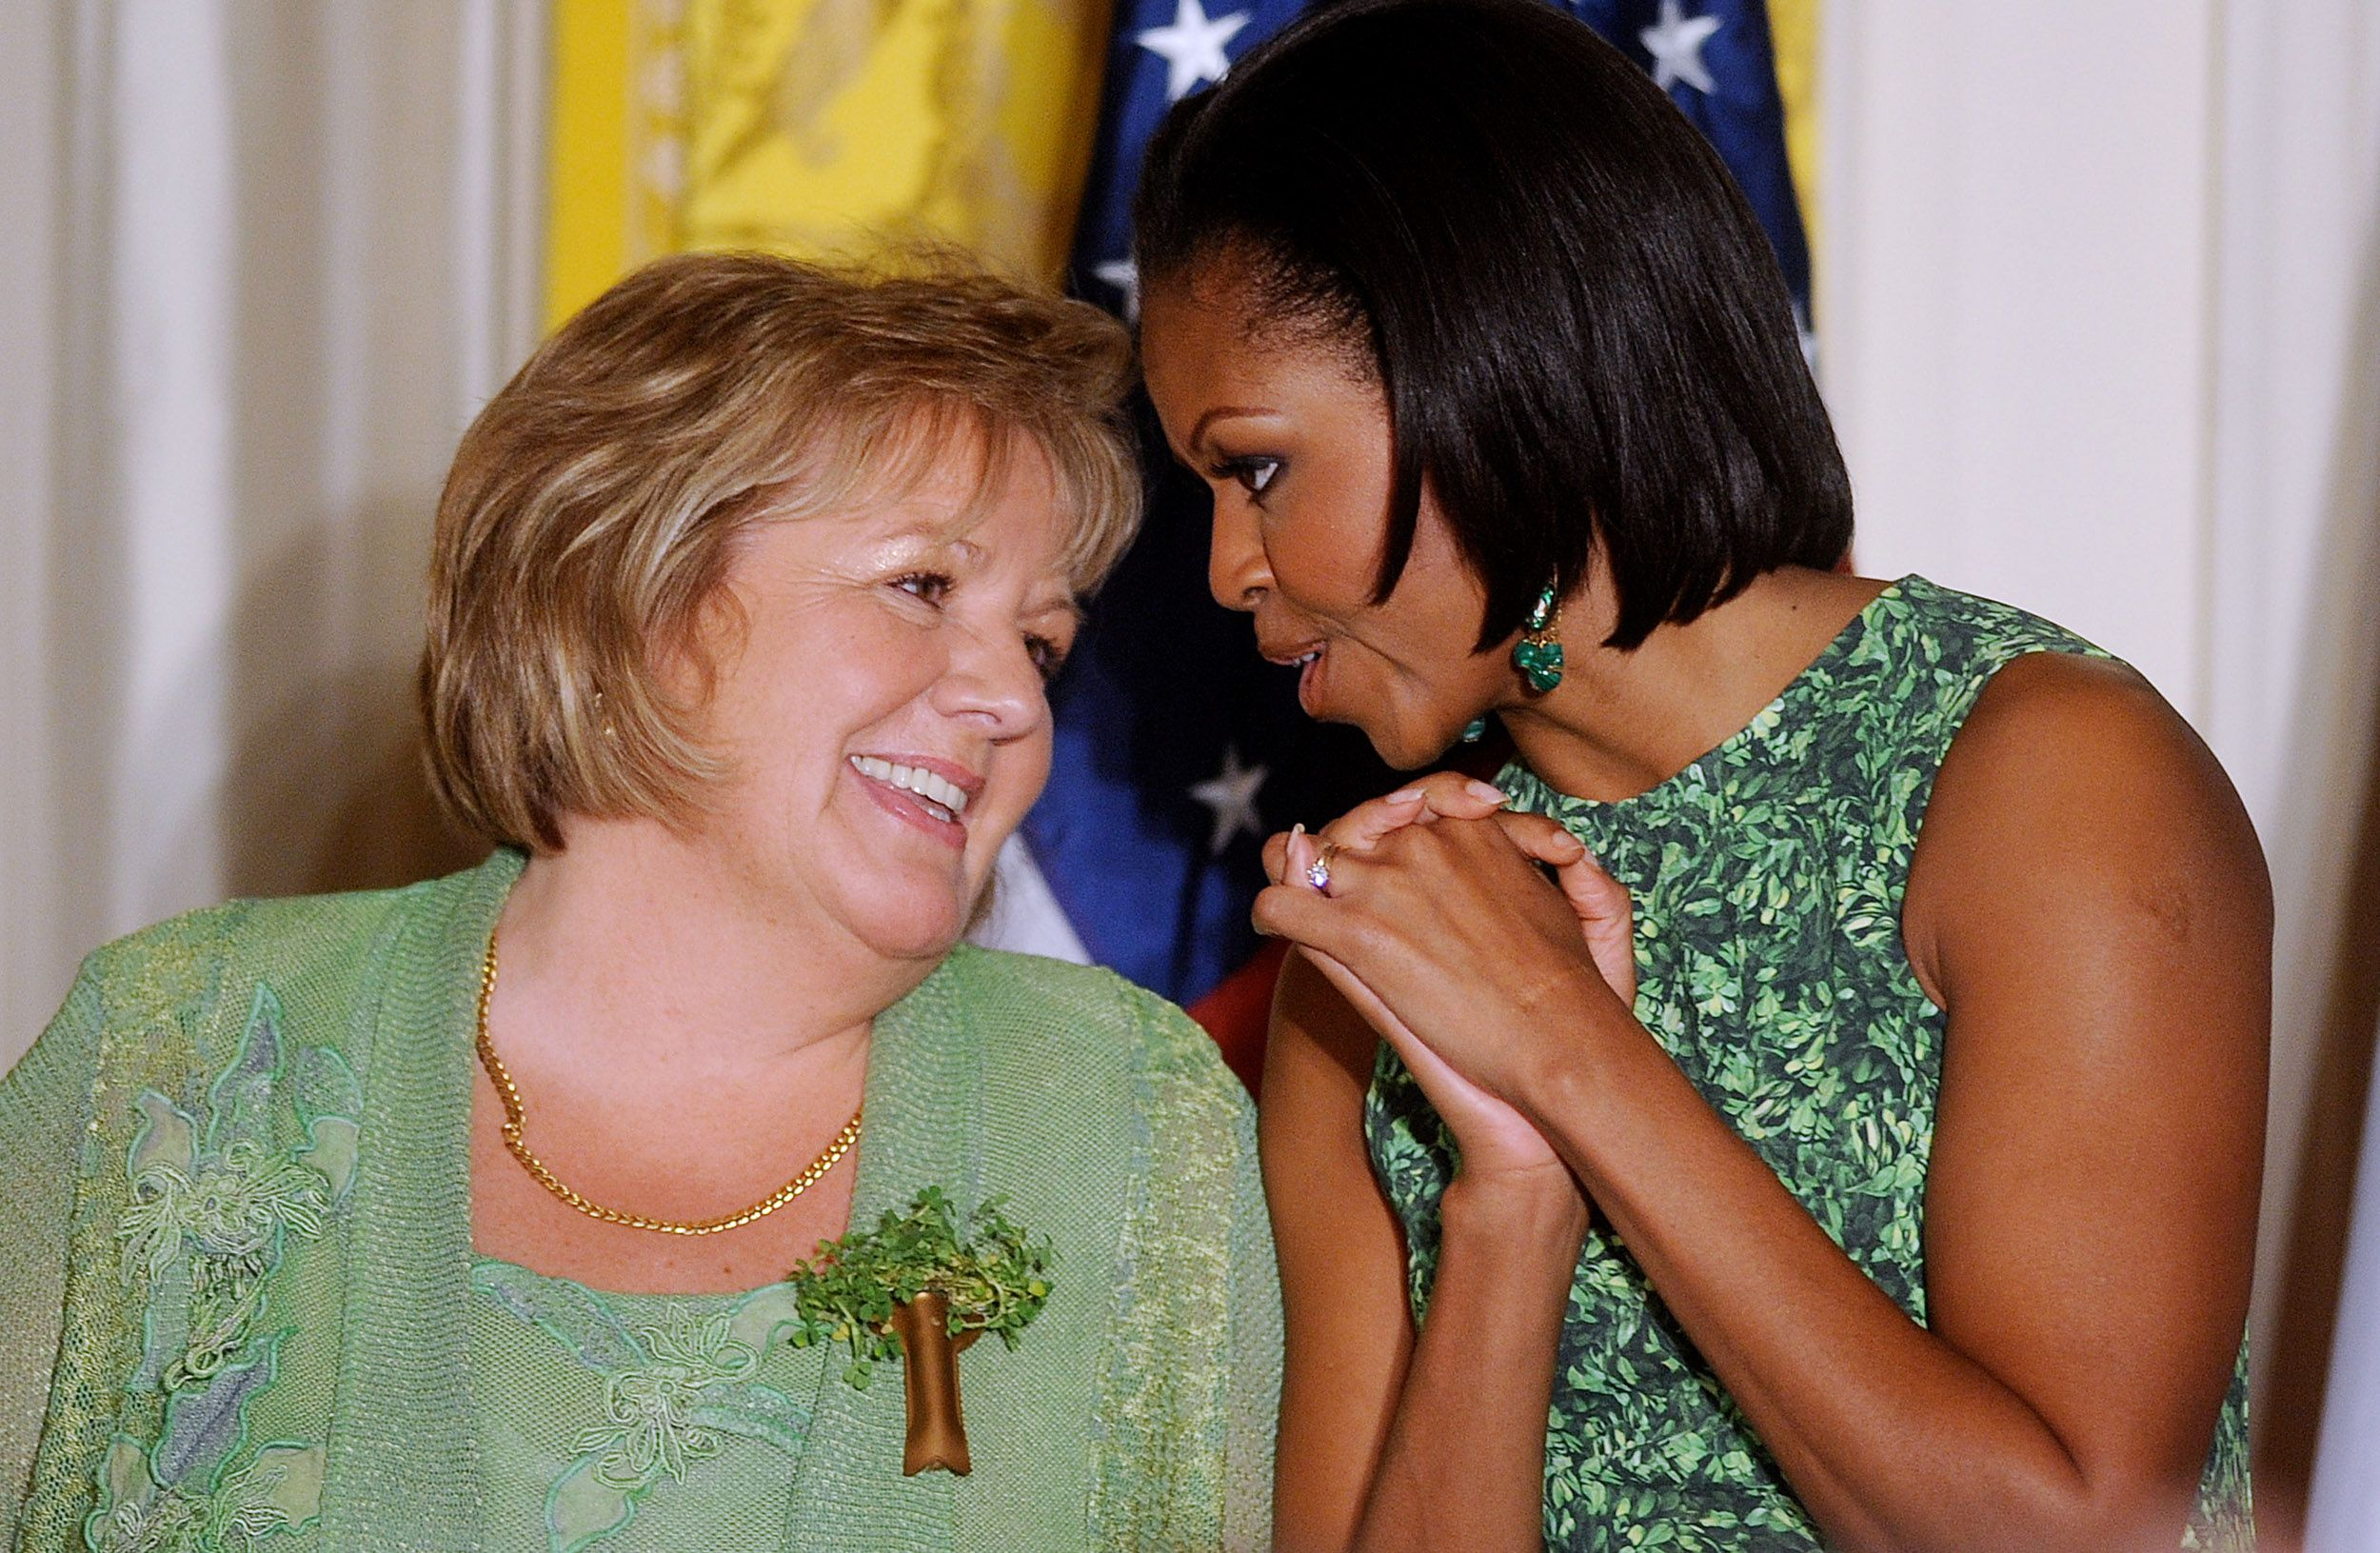 Michelle Obama and wife of Irish Prime Minister Fionnuala O'Kelly attend a St. Patrick's Day reception in the East Room of the White House on March 17, 2011 in Washington, D.C.